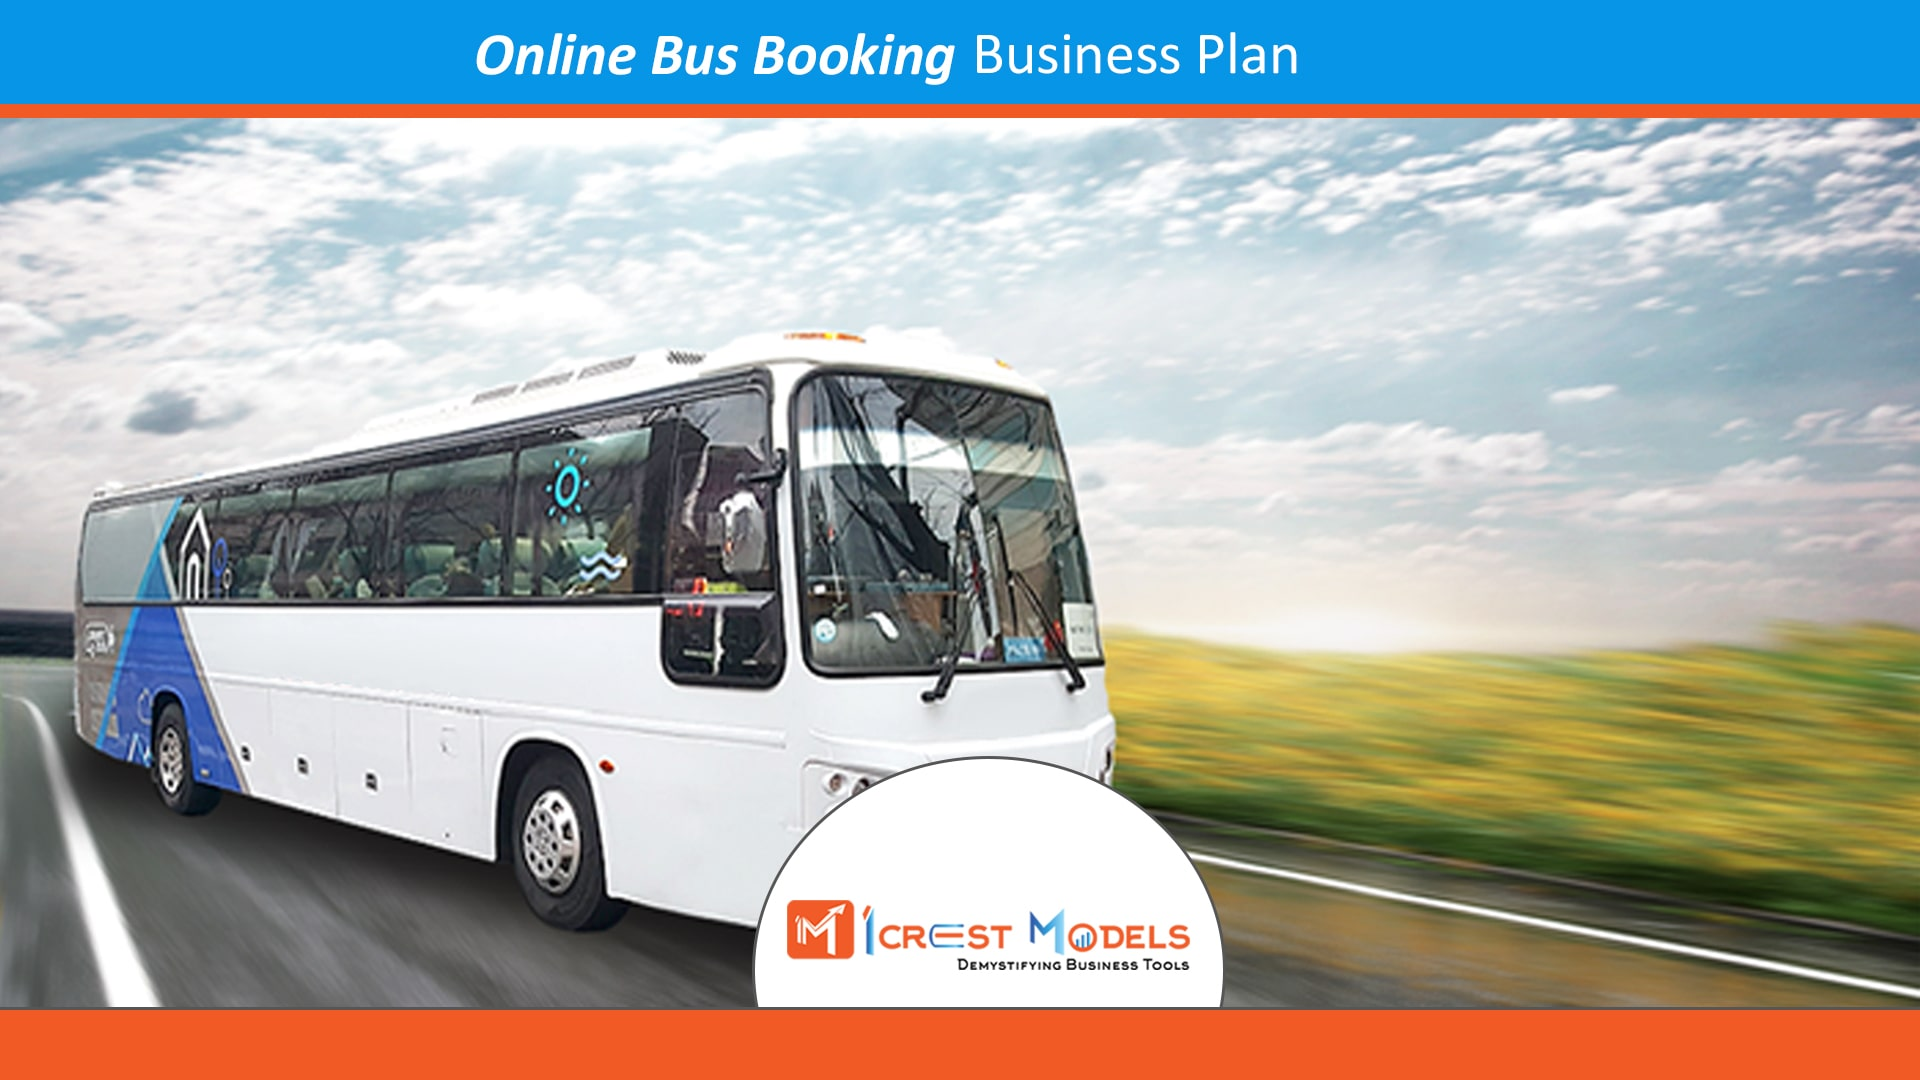 Business Plan For Online Bus Service Booking